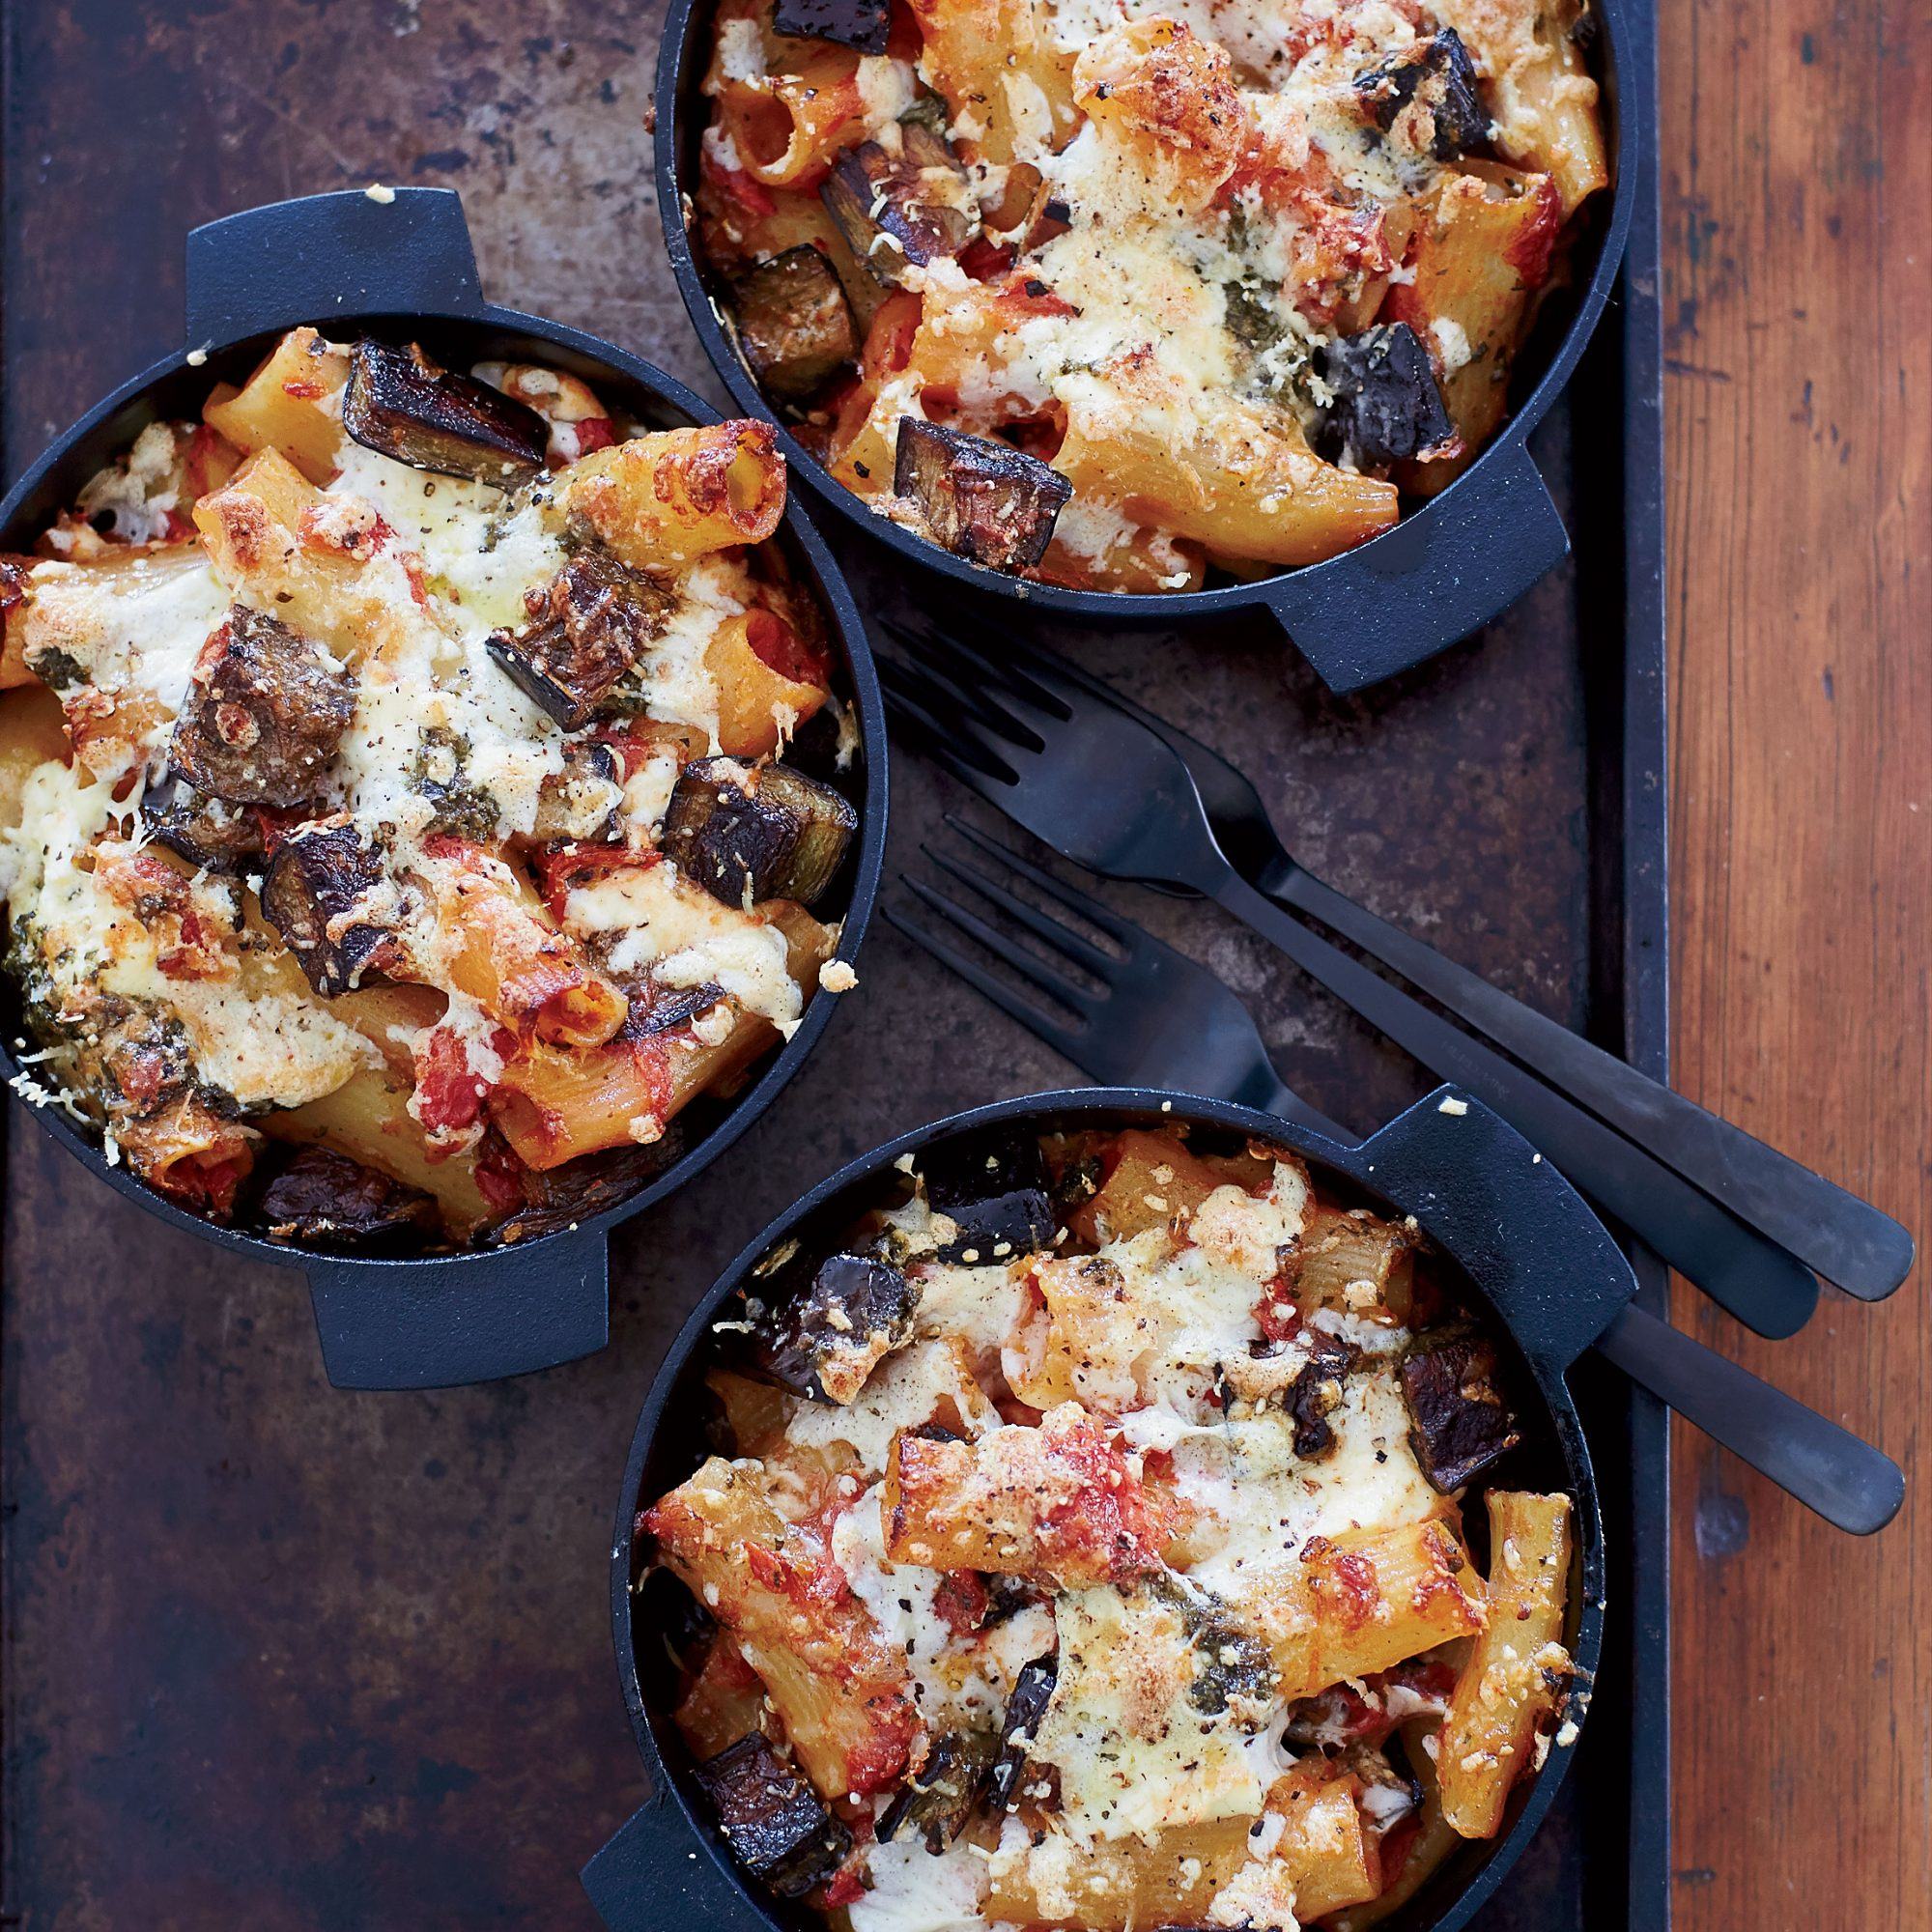 Baked Rigatoni with Eggplant Tomatoes and Ricotta